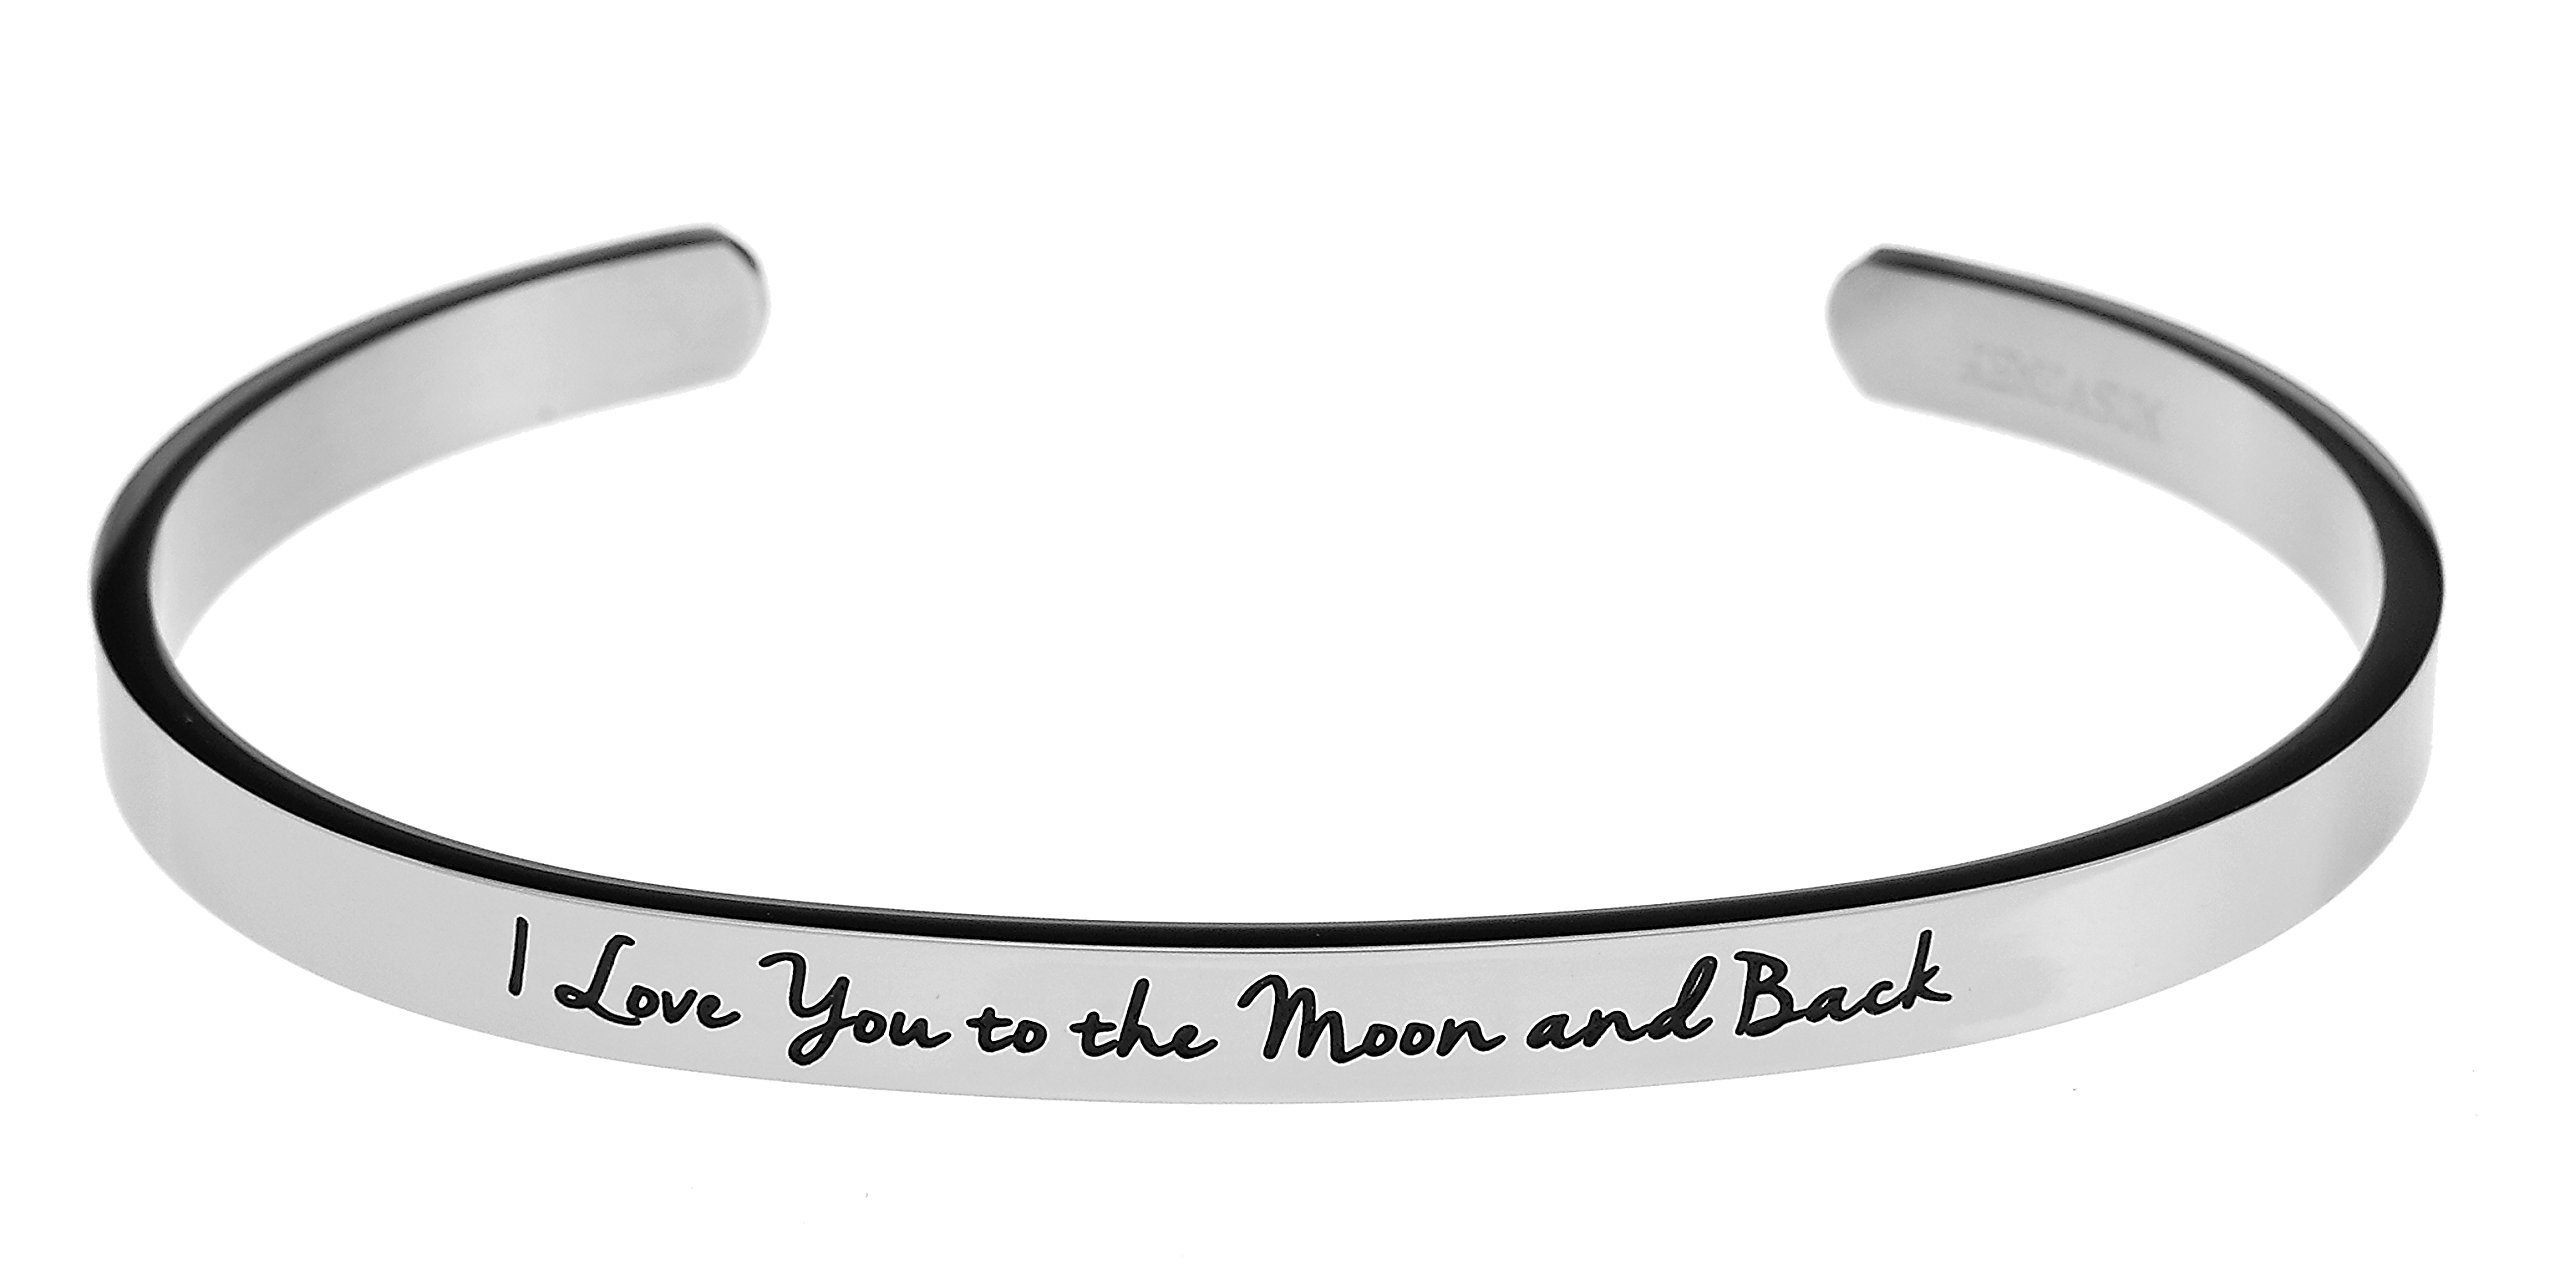 Kendasun Jewelry I Love You to the Moon and Back Inspirational Messaged Cuff Bracelet Bangle (White)